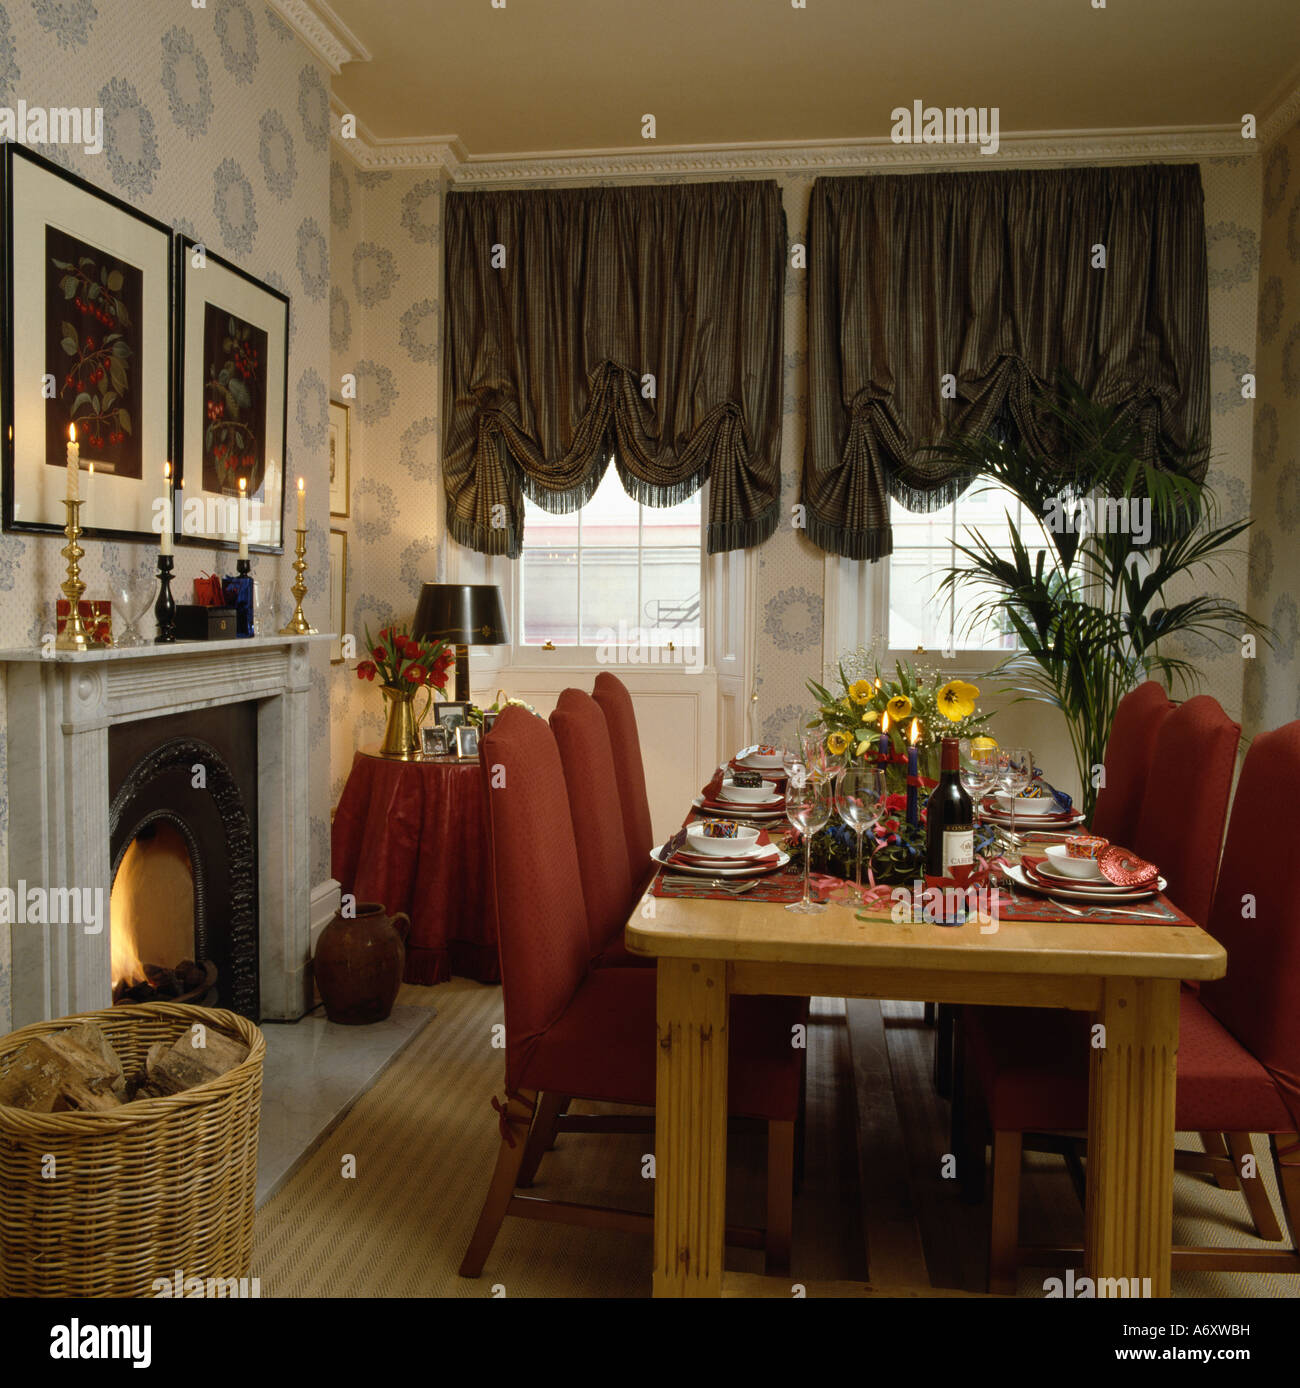 Diningroom With Festoon Blinds And Table Upholstered Red Chairs In Front Of Fireplace